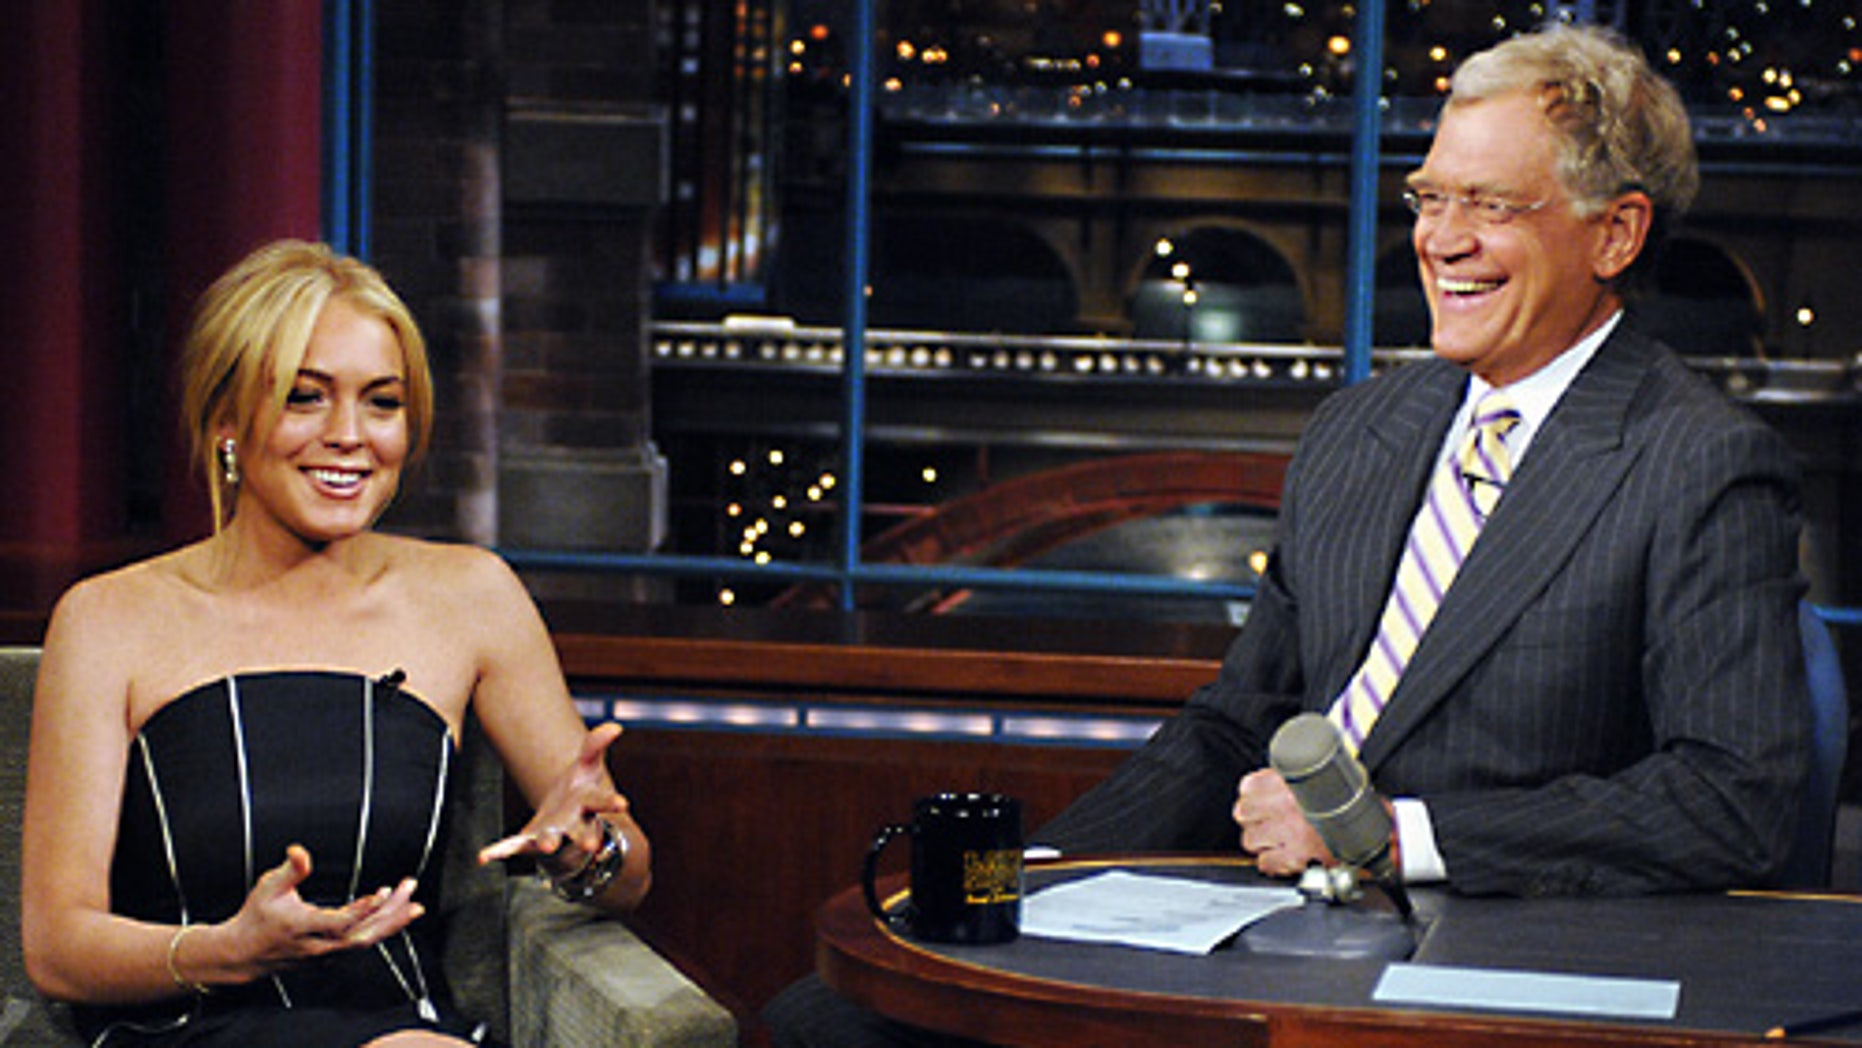 Lindsay Lohan on 'Late Night' in 2007. (CBS)